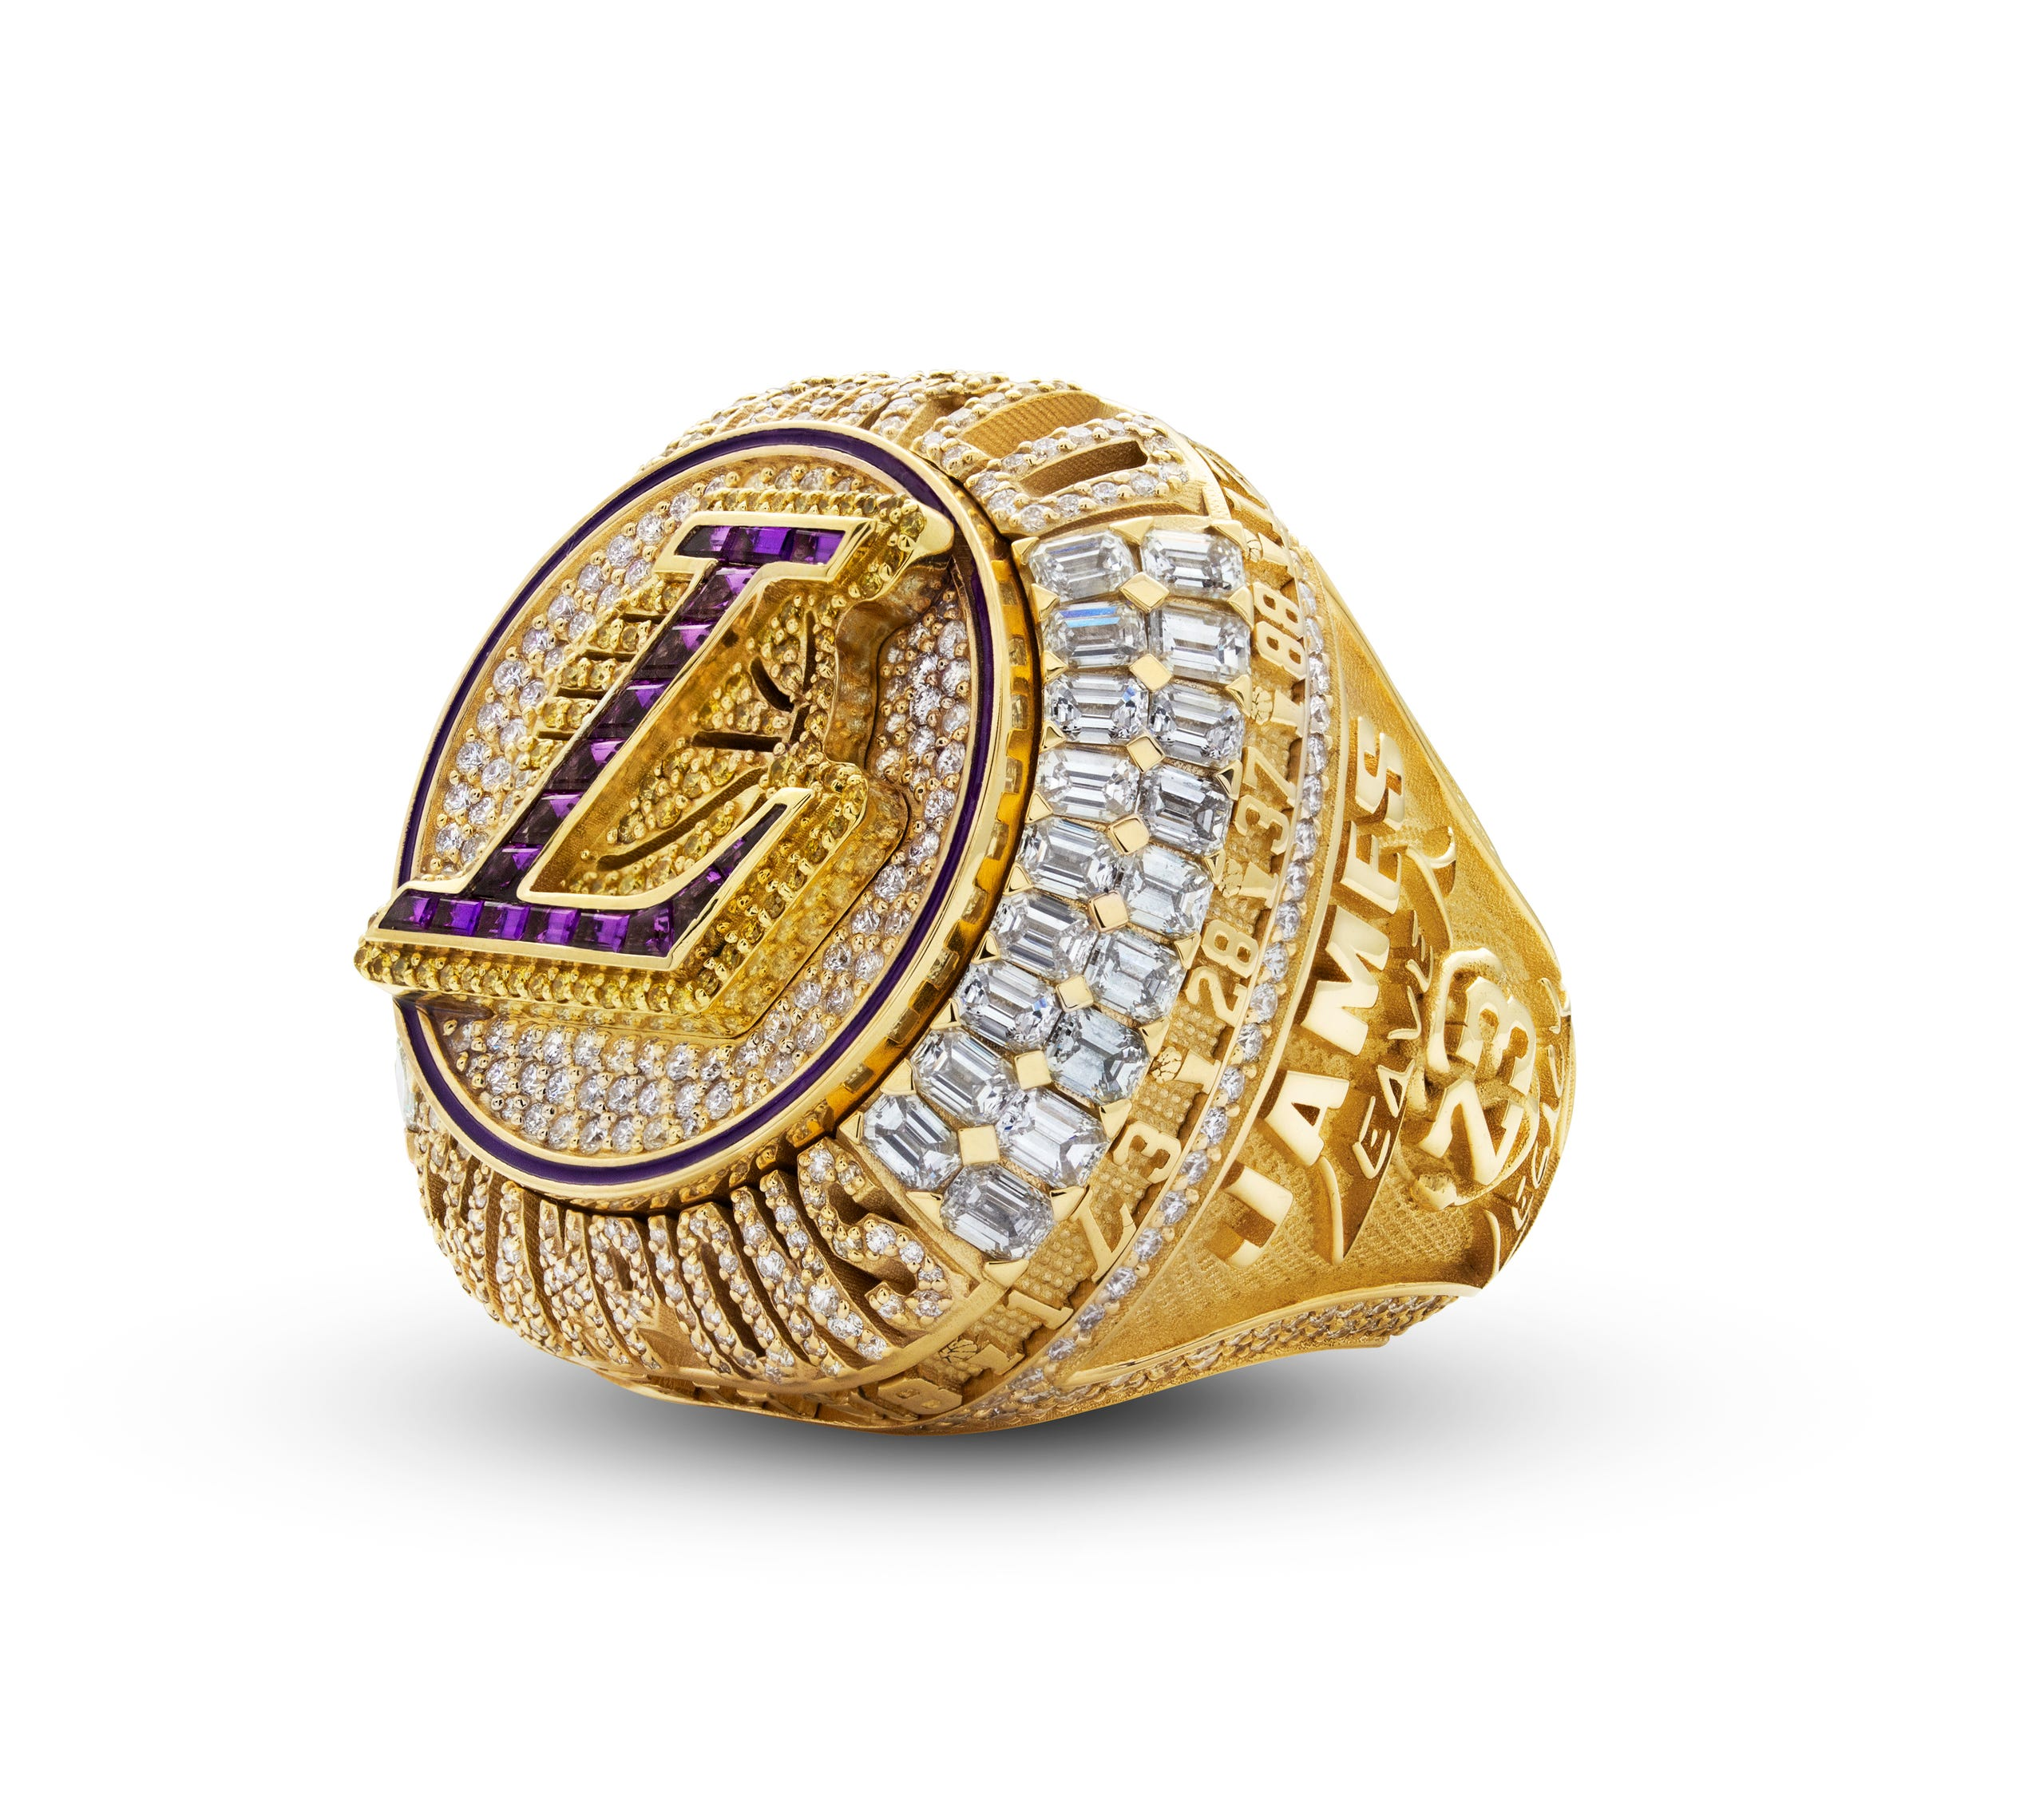 Lakers Championship Rings Los Angeles Rings Are Most Expensive Ever